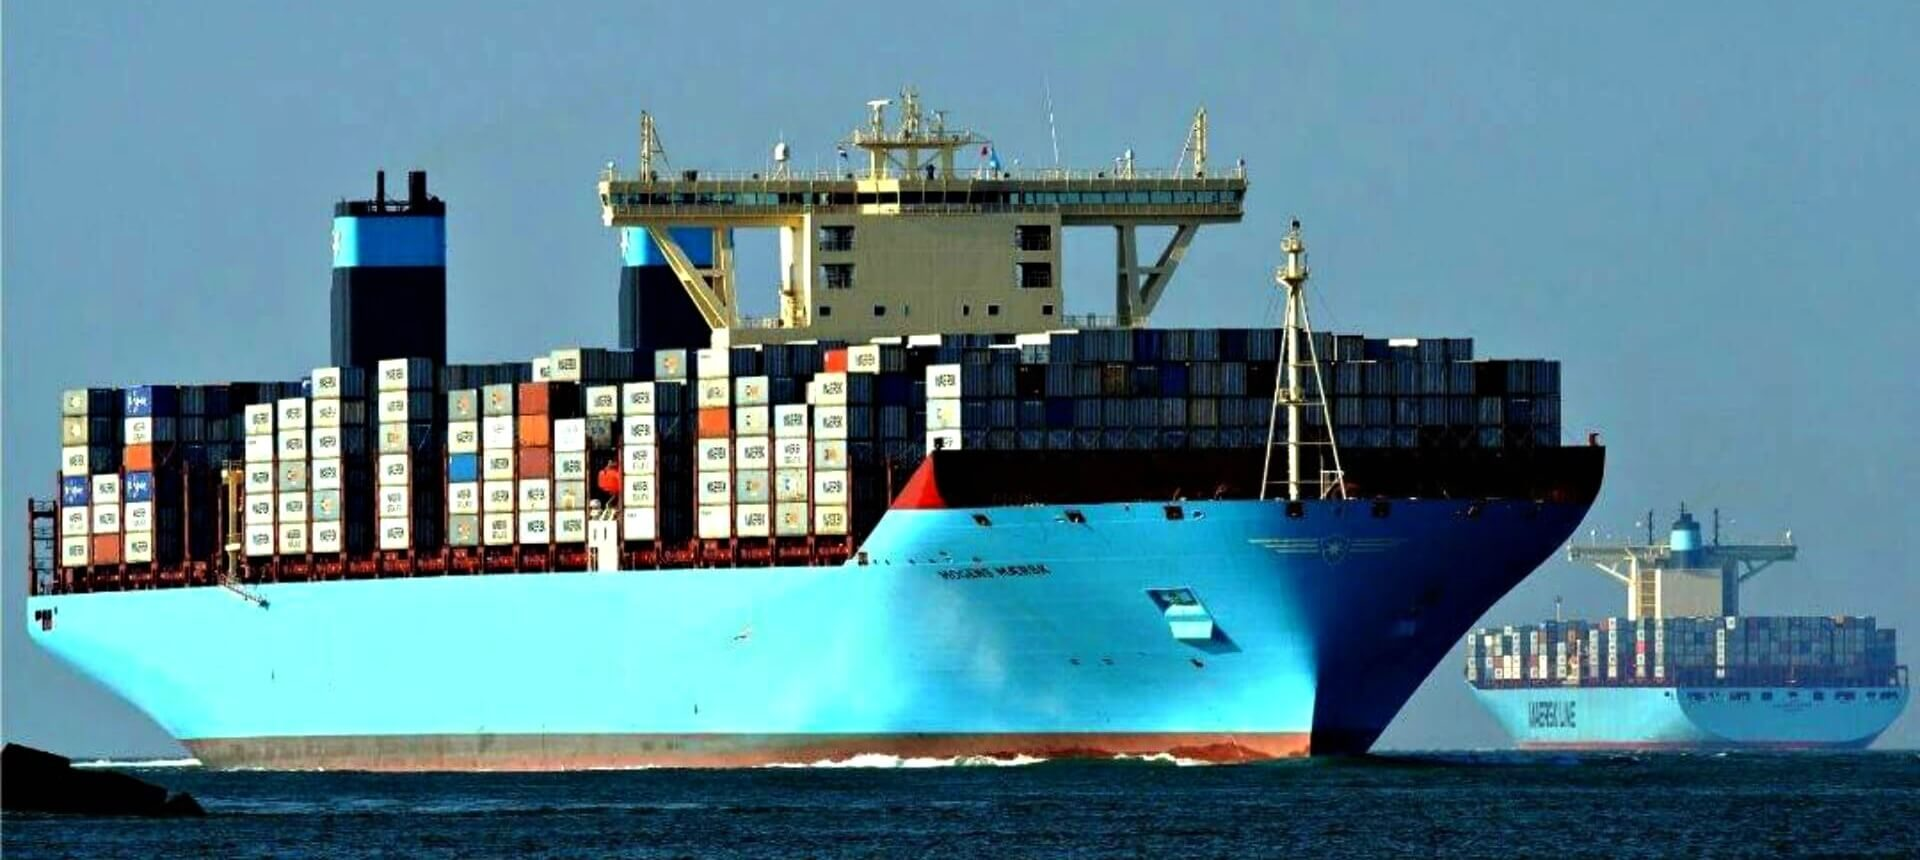 cargo-ship-heading-out-of-port